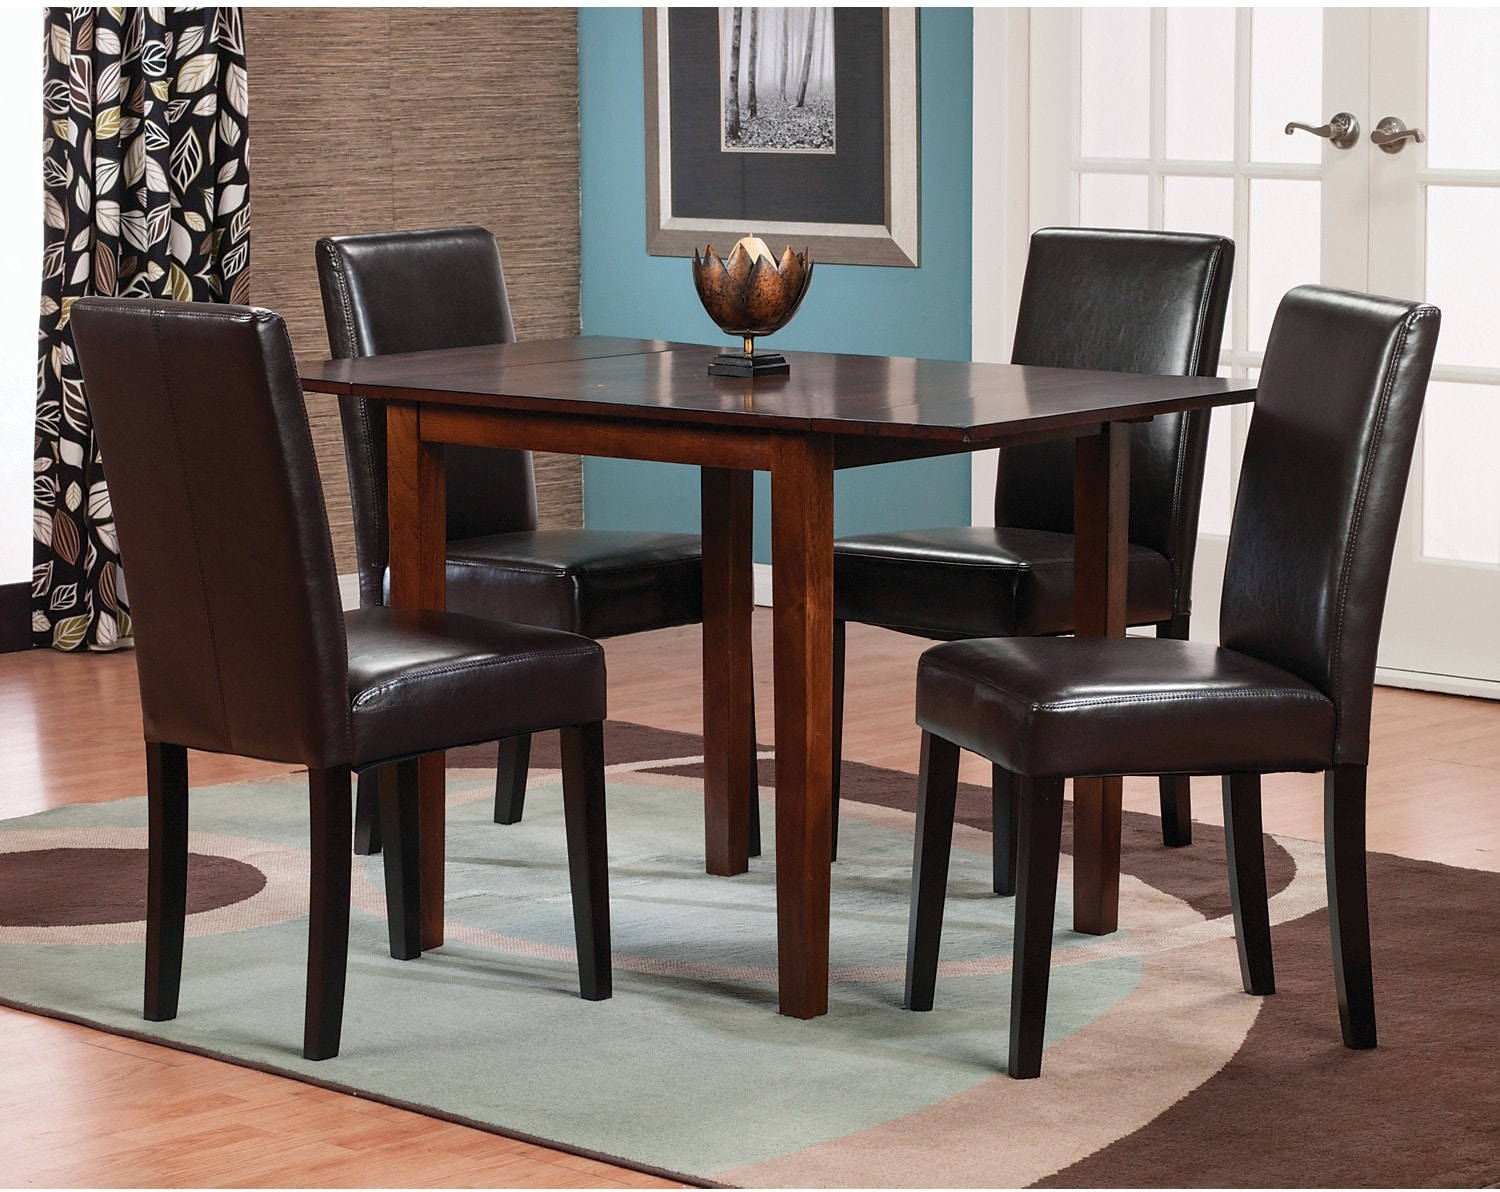 Dining Room Furniture - Adara 5-Piece Square Dining Package with Brown Accent Chairs